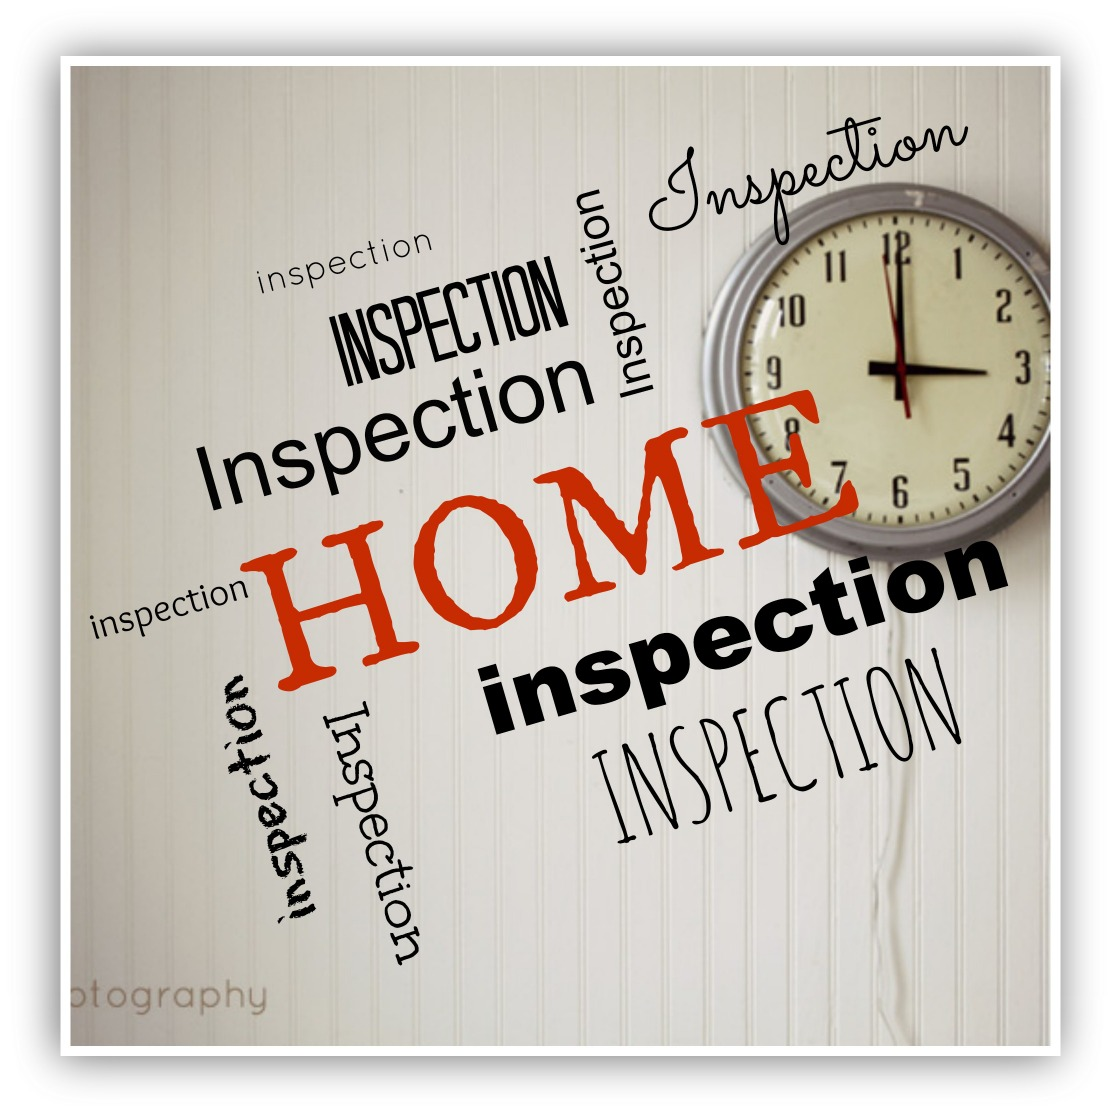 What can I expect from a Home Inspection?